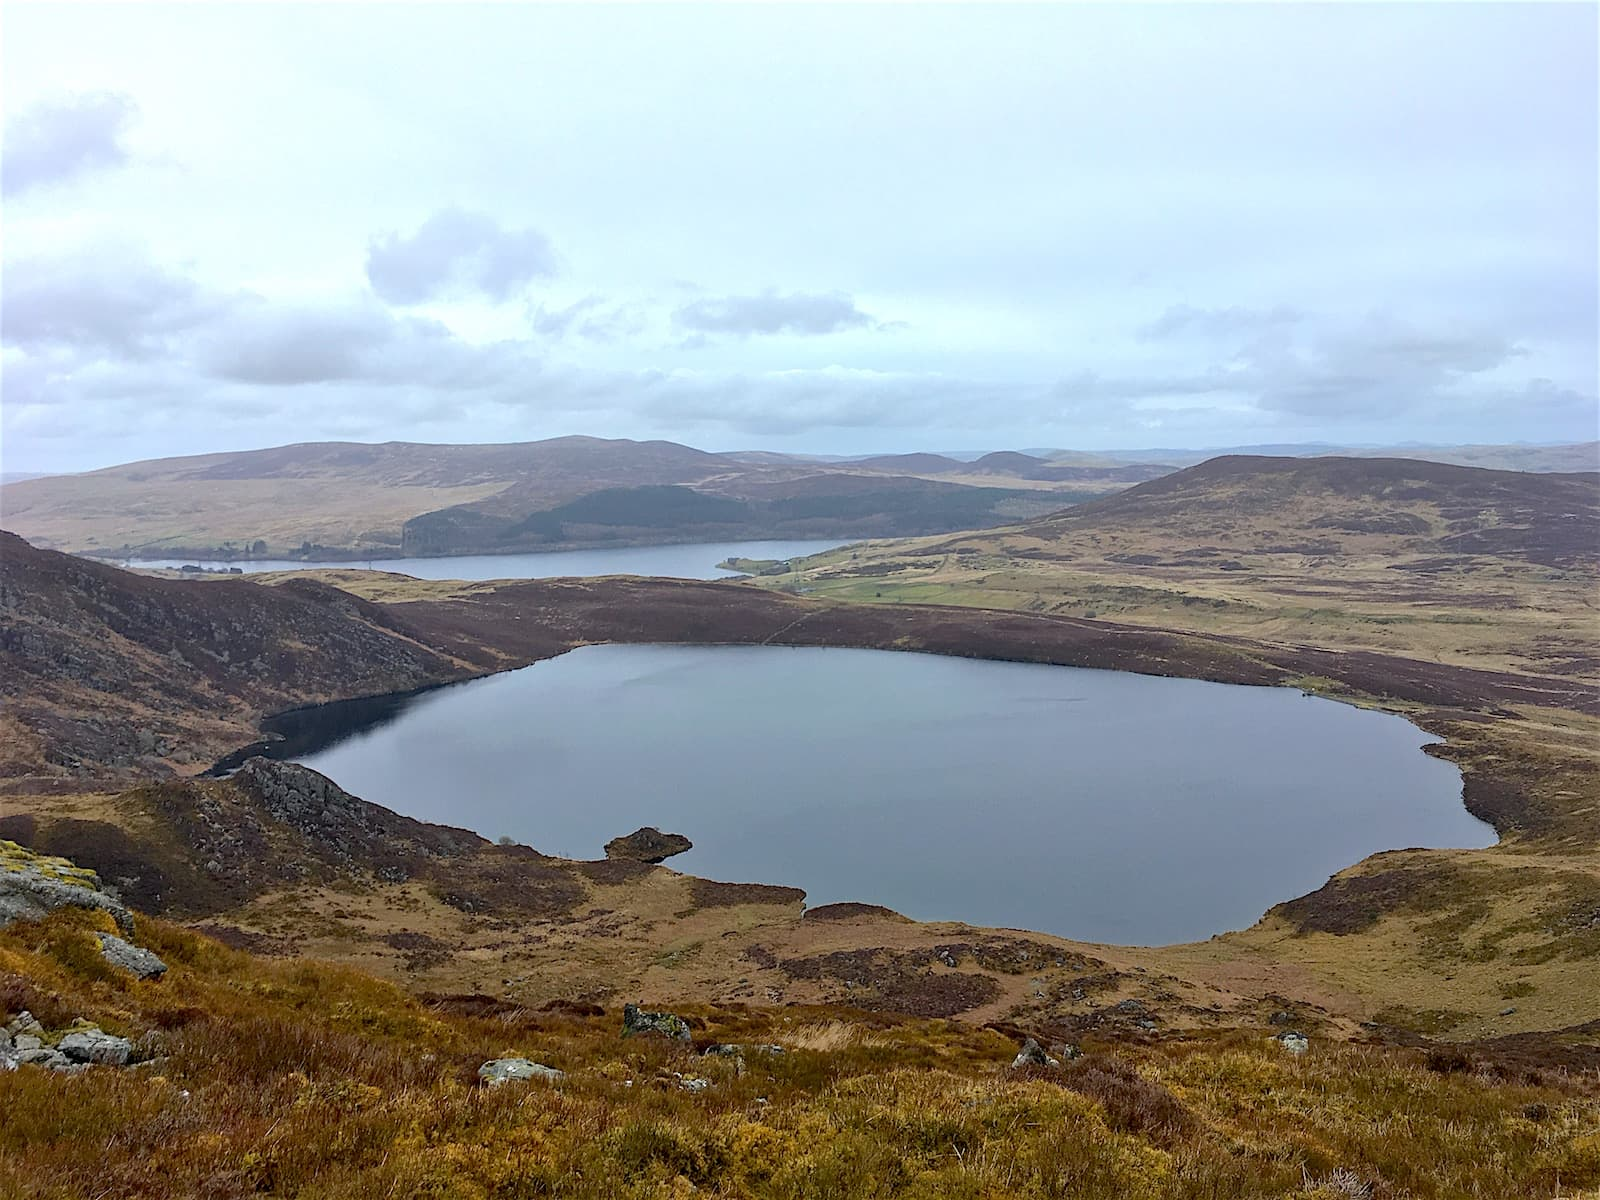 Arenig Fawr March 2018 | Featured Image | thefrozendivide